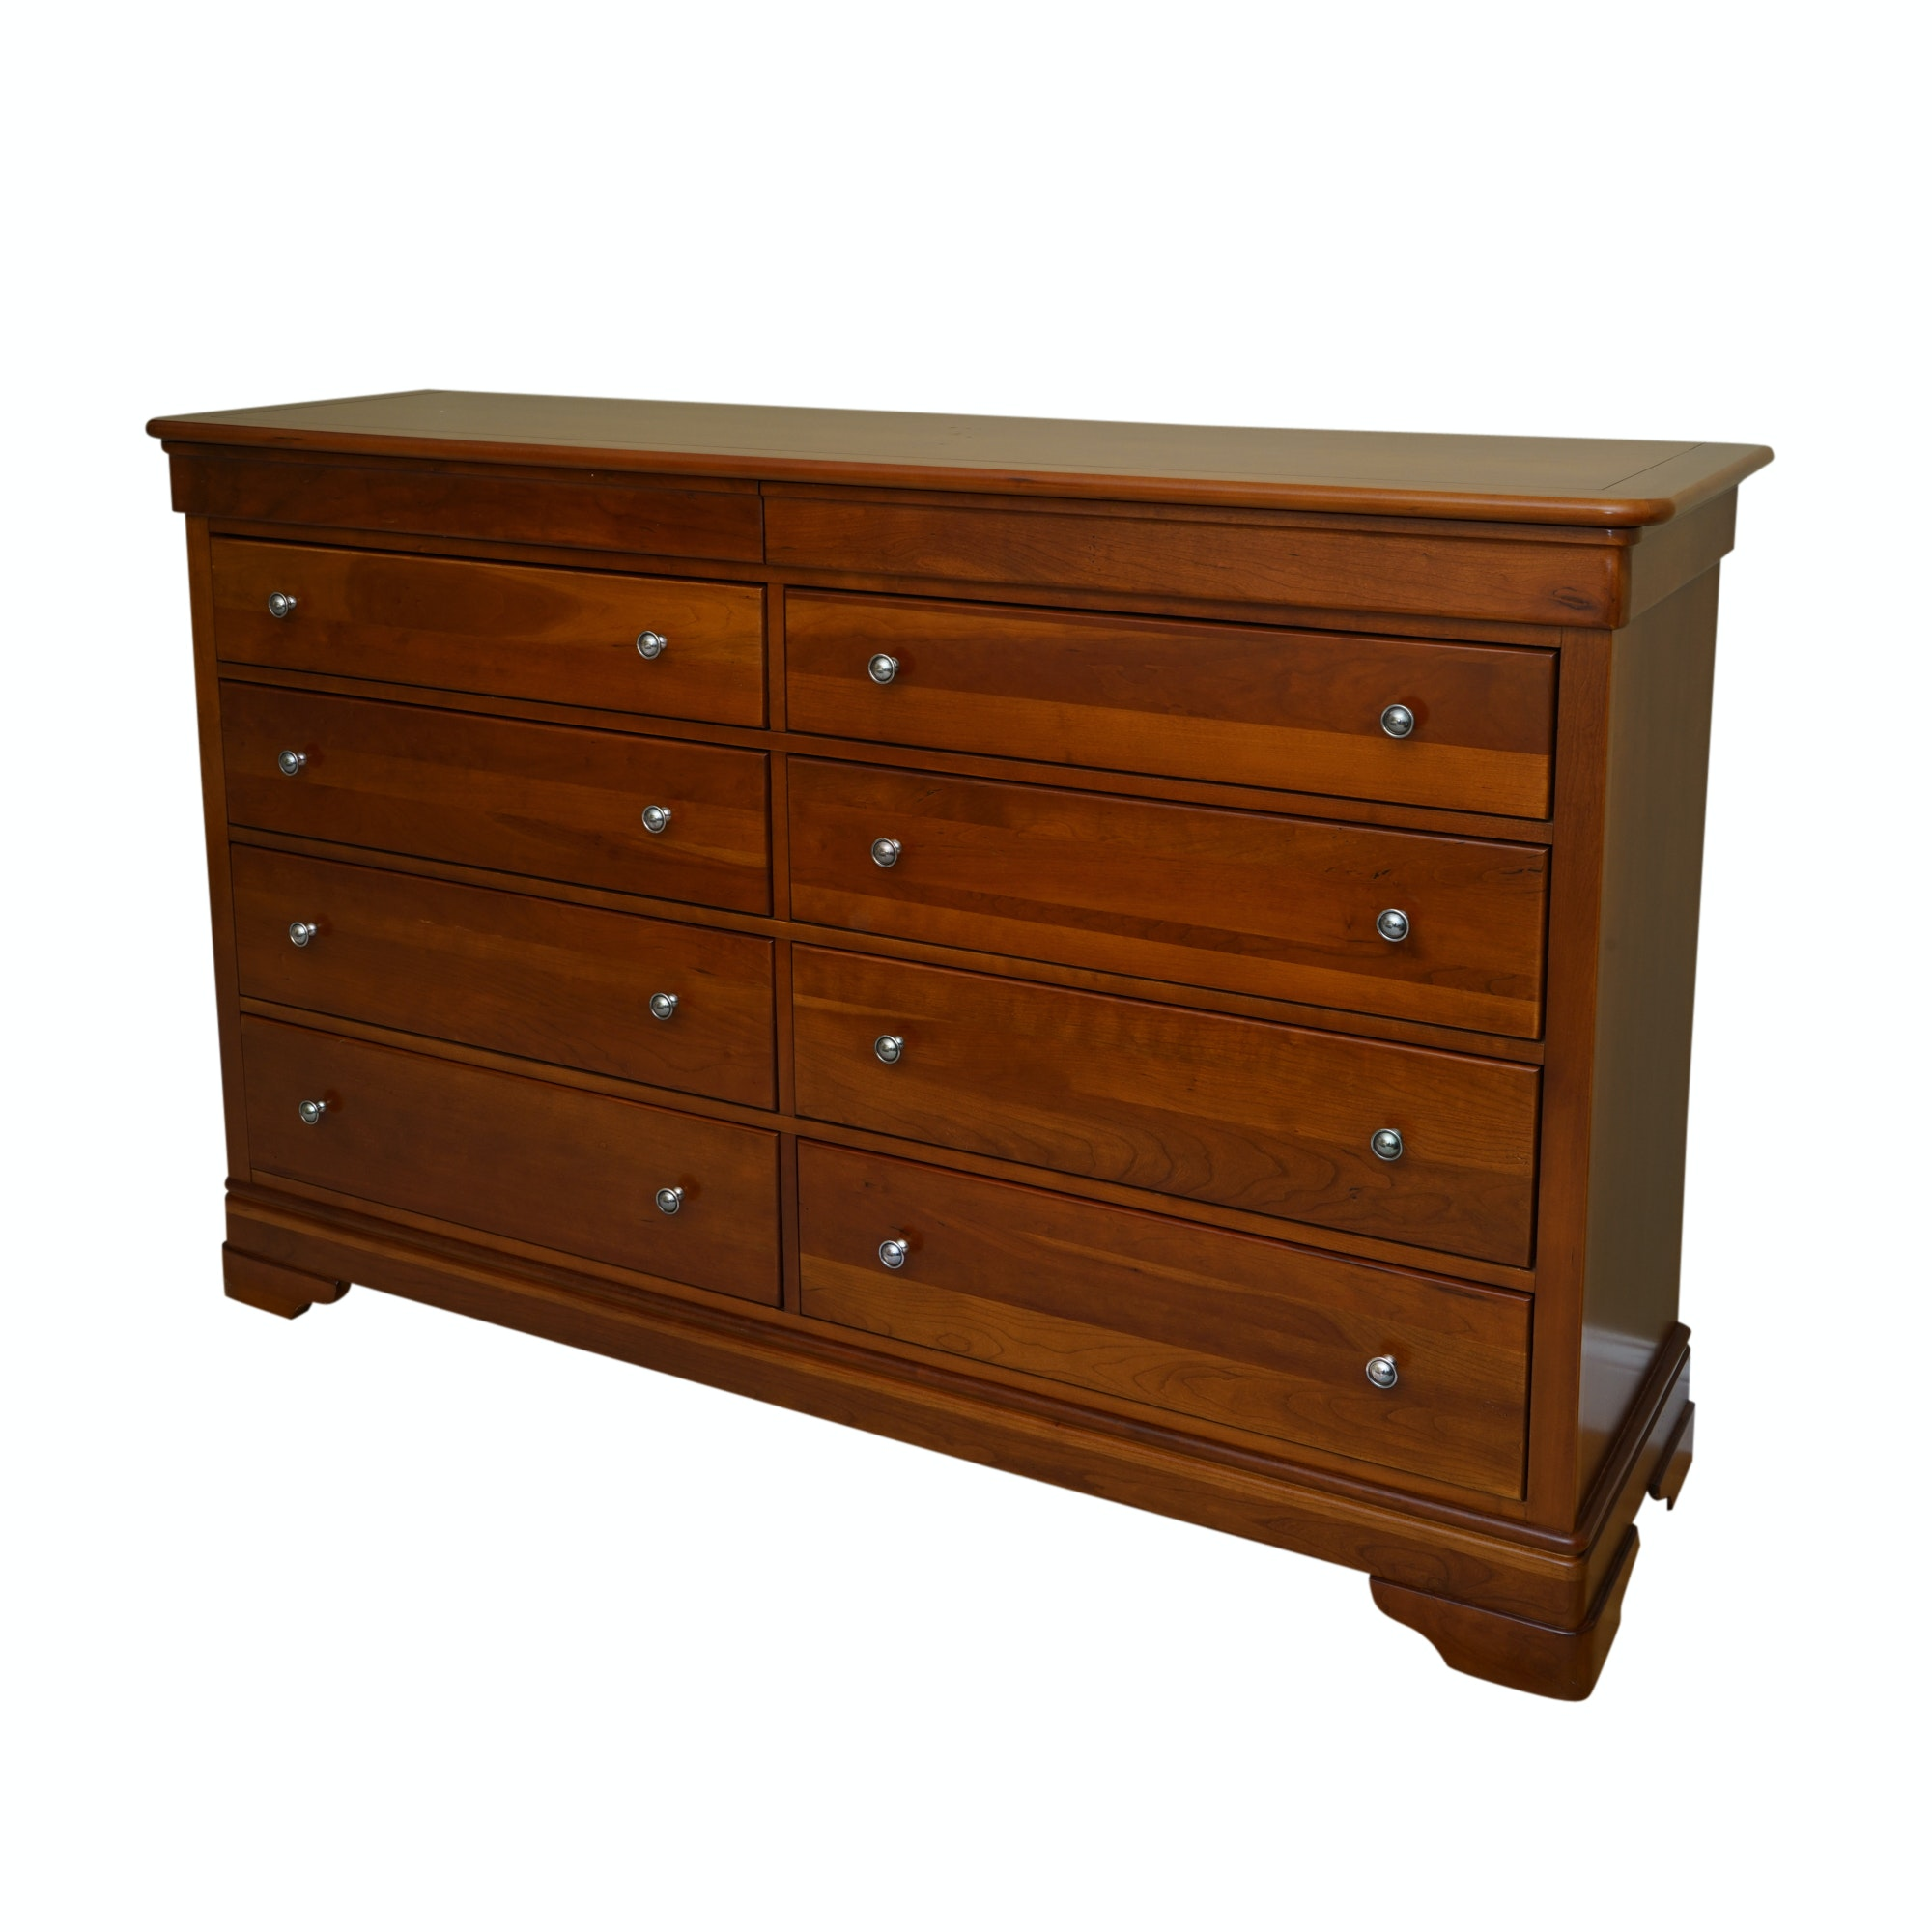 French Style Cherry Dresser by Stanley